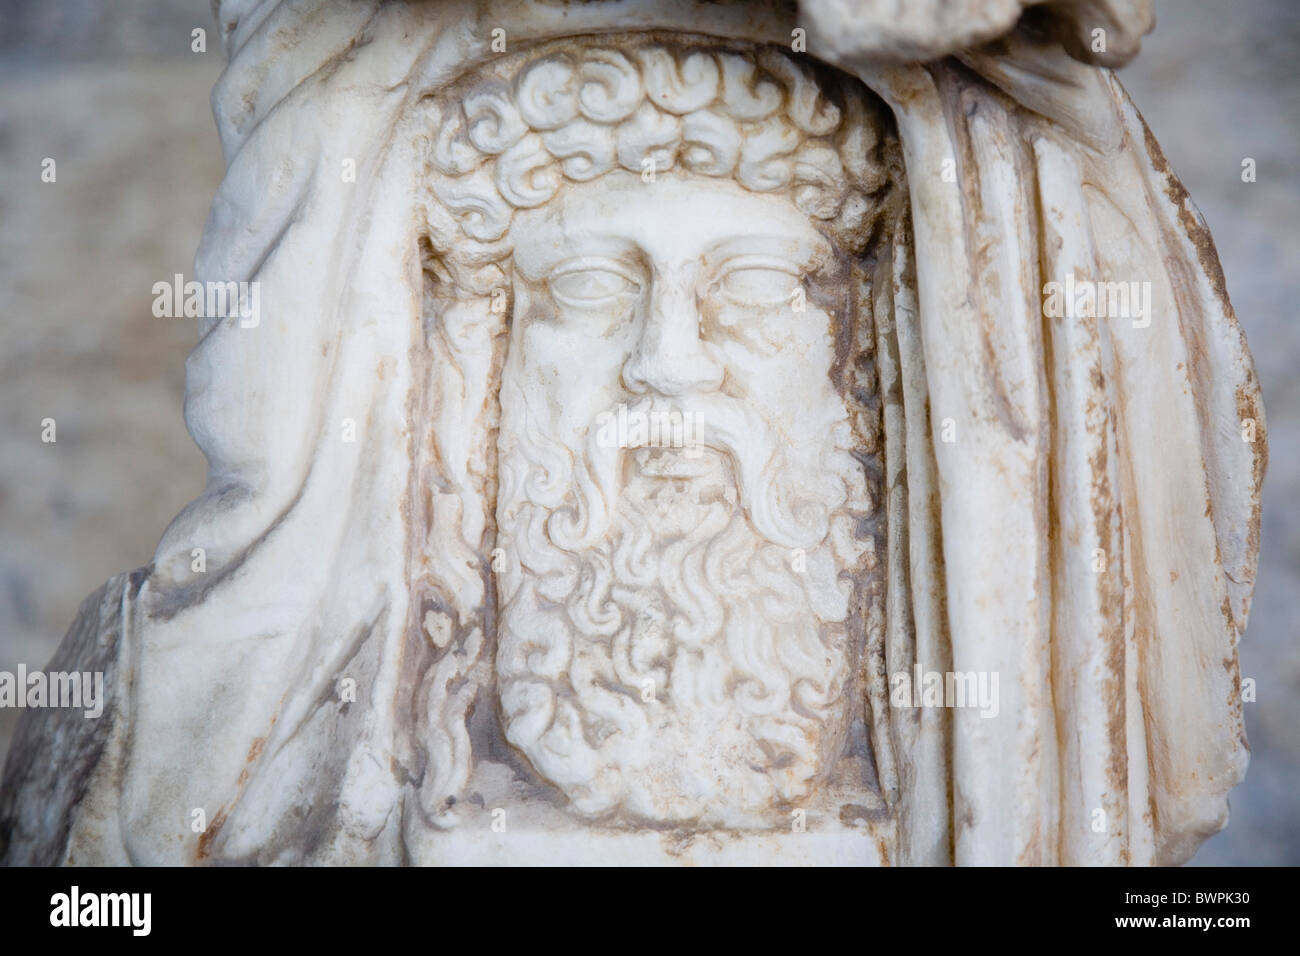 GREECE Attica Athens Carved, bearded head thought to be that of Zeus, King of the Gods, the ruler of Mount Olympus. - Stock Image